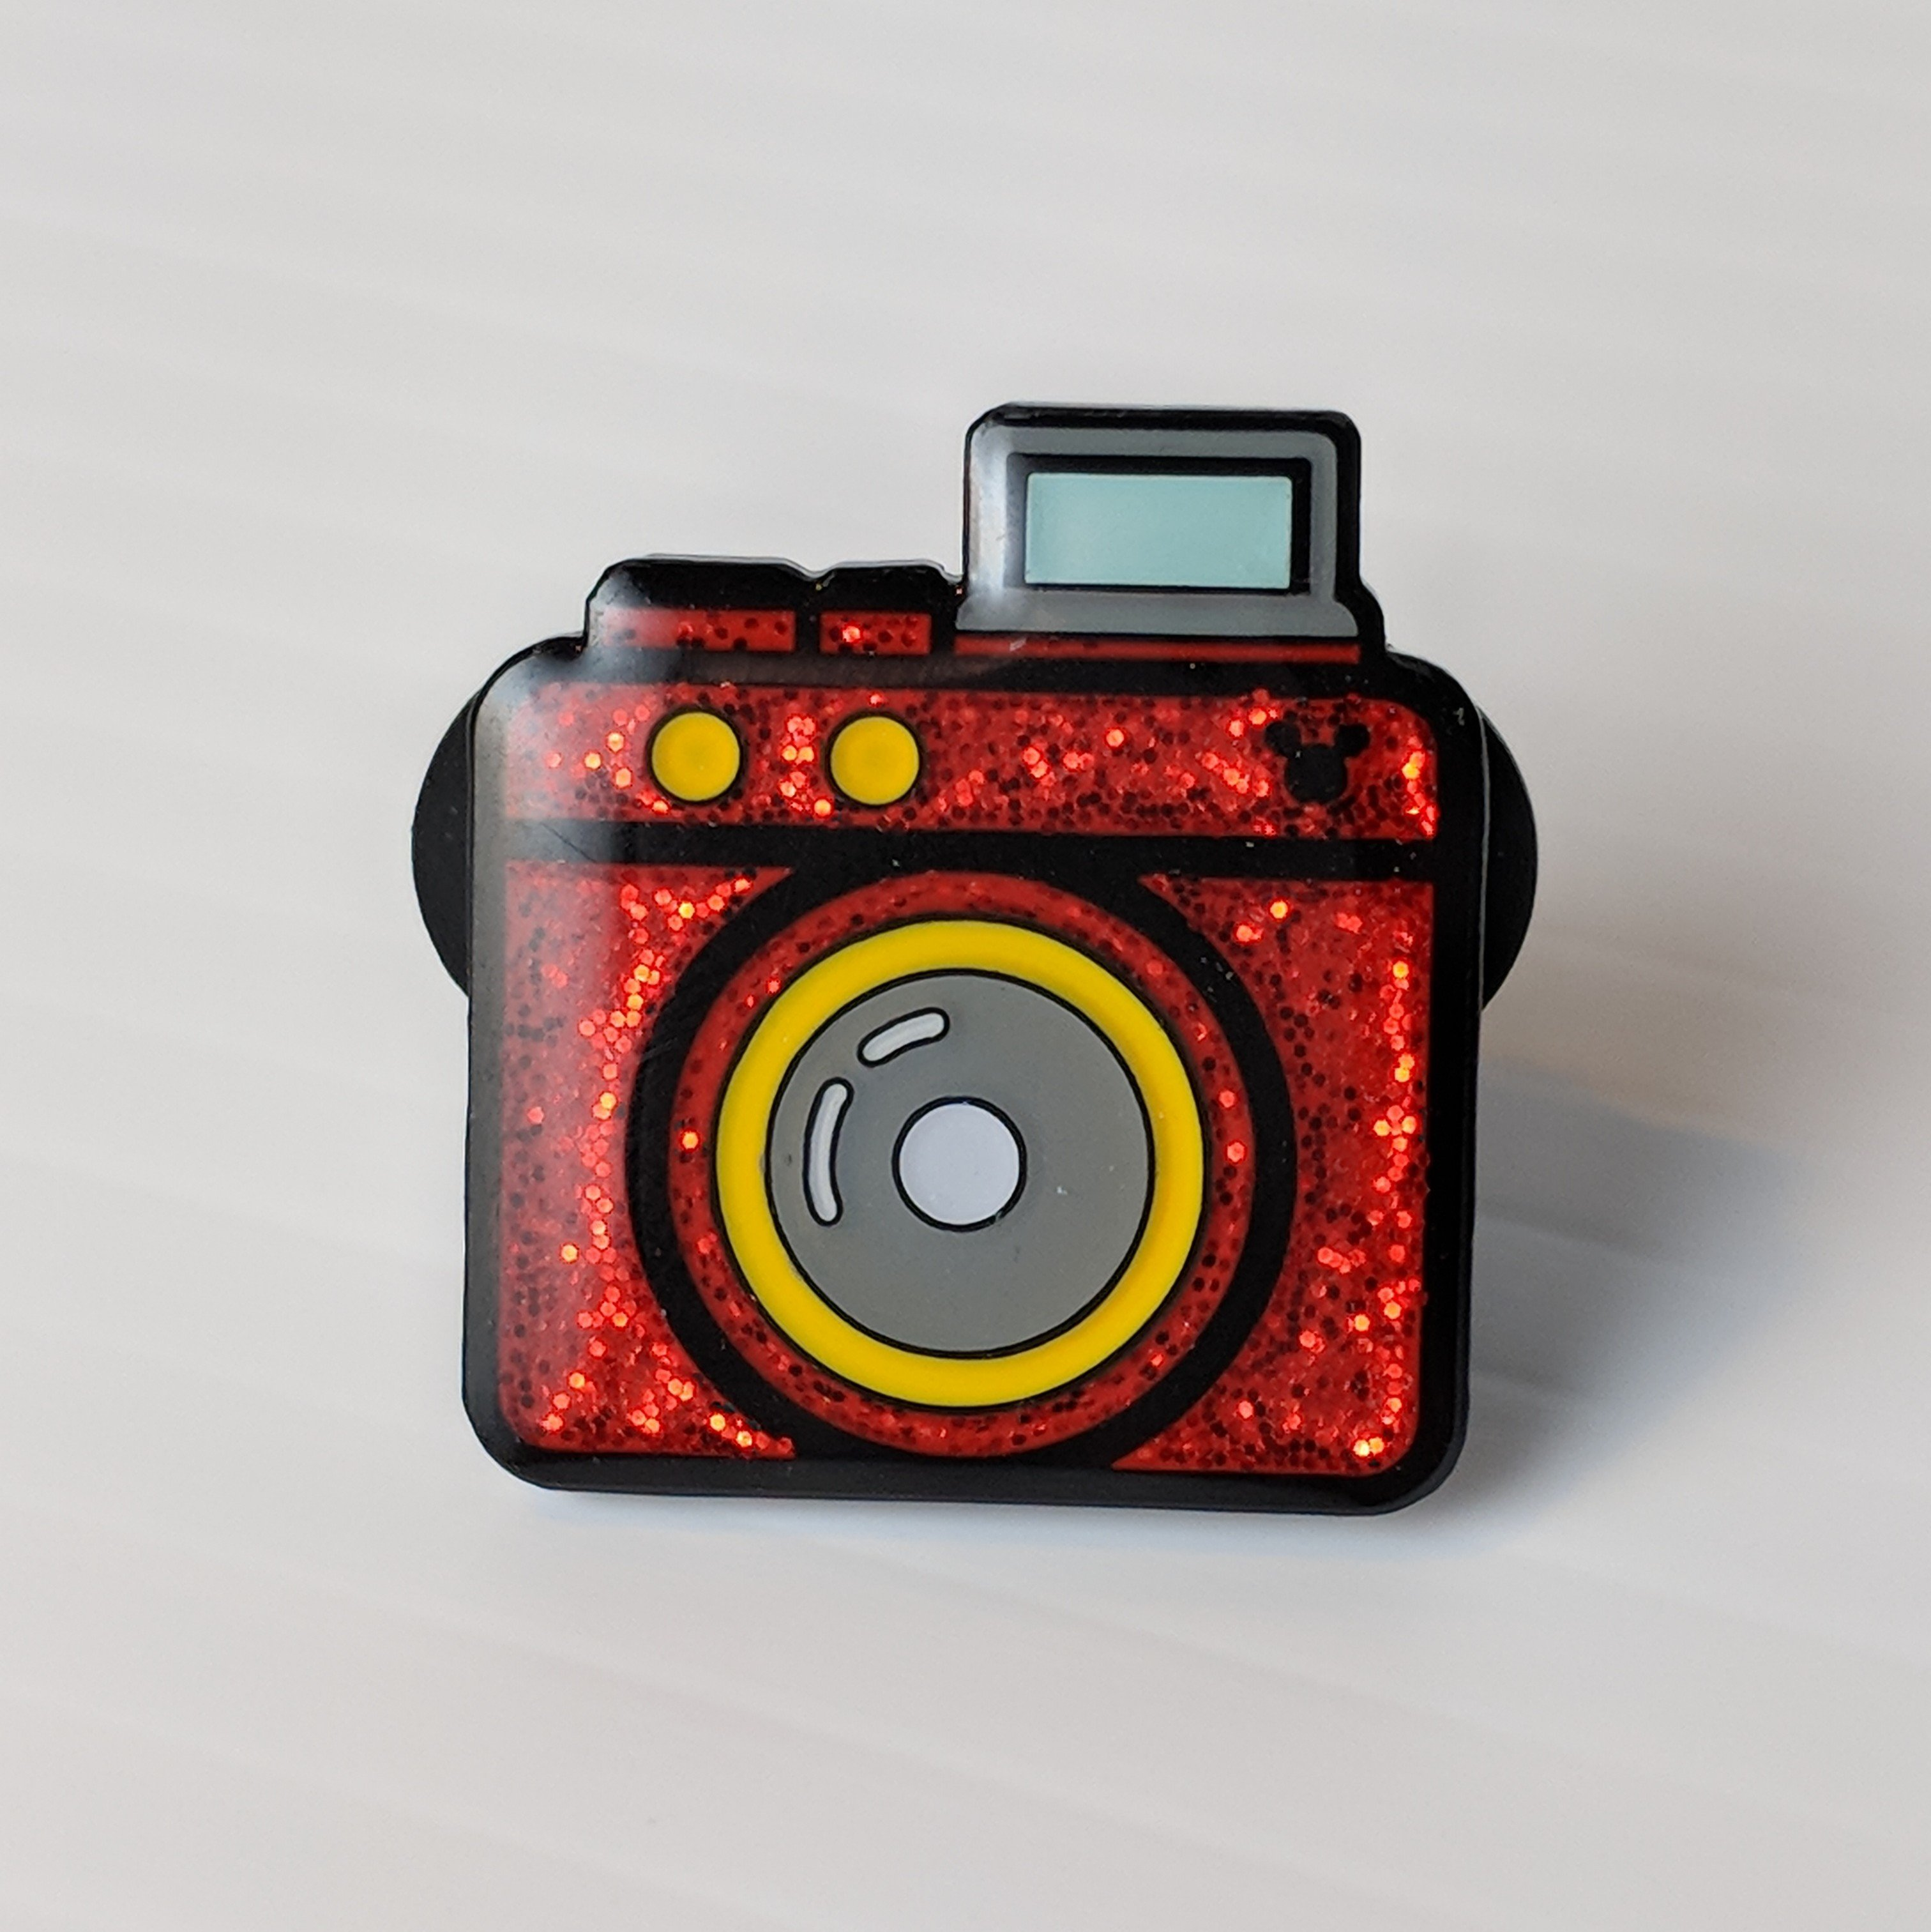 Most Magical Camera (Red) 00001